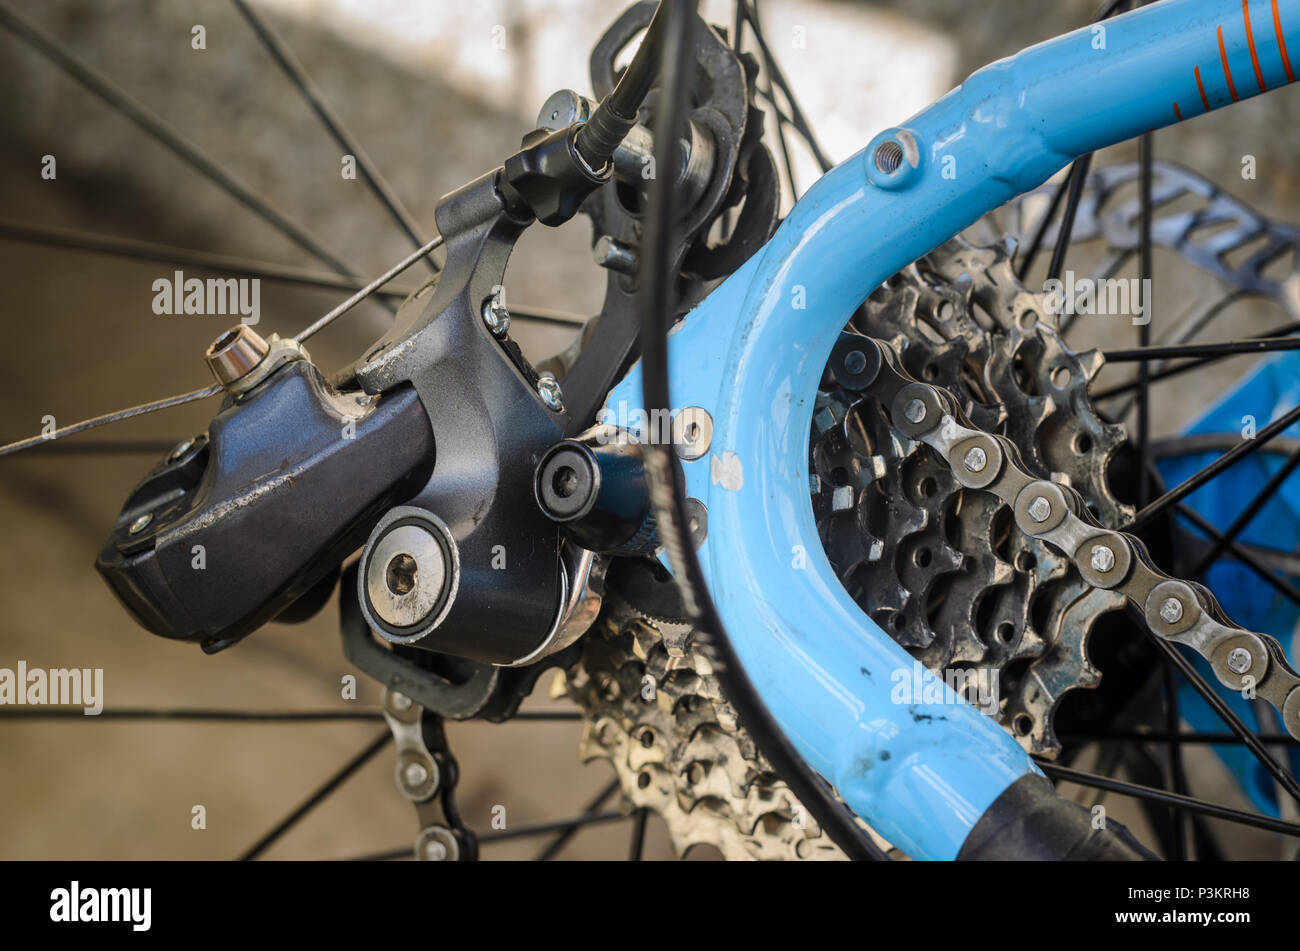 Rear Bicycle Derailleur Fell Apart in Half. Bicycle Rear Derailleur Foot is Detached from the Body. Unexpected Bike Failure. - Stock Image